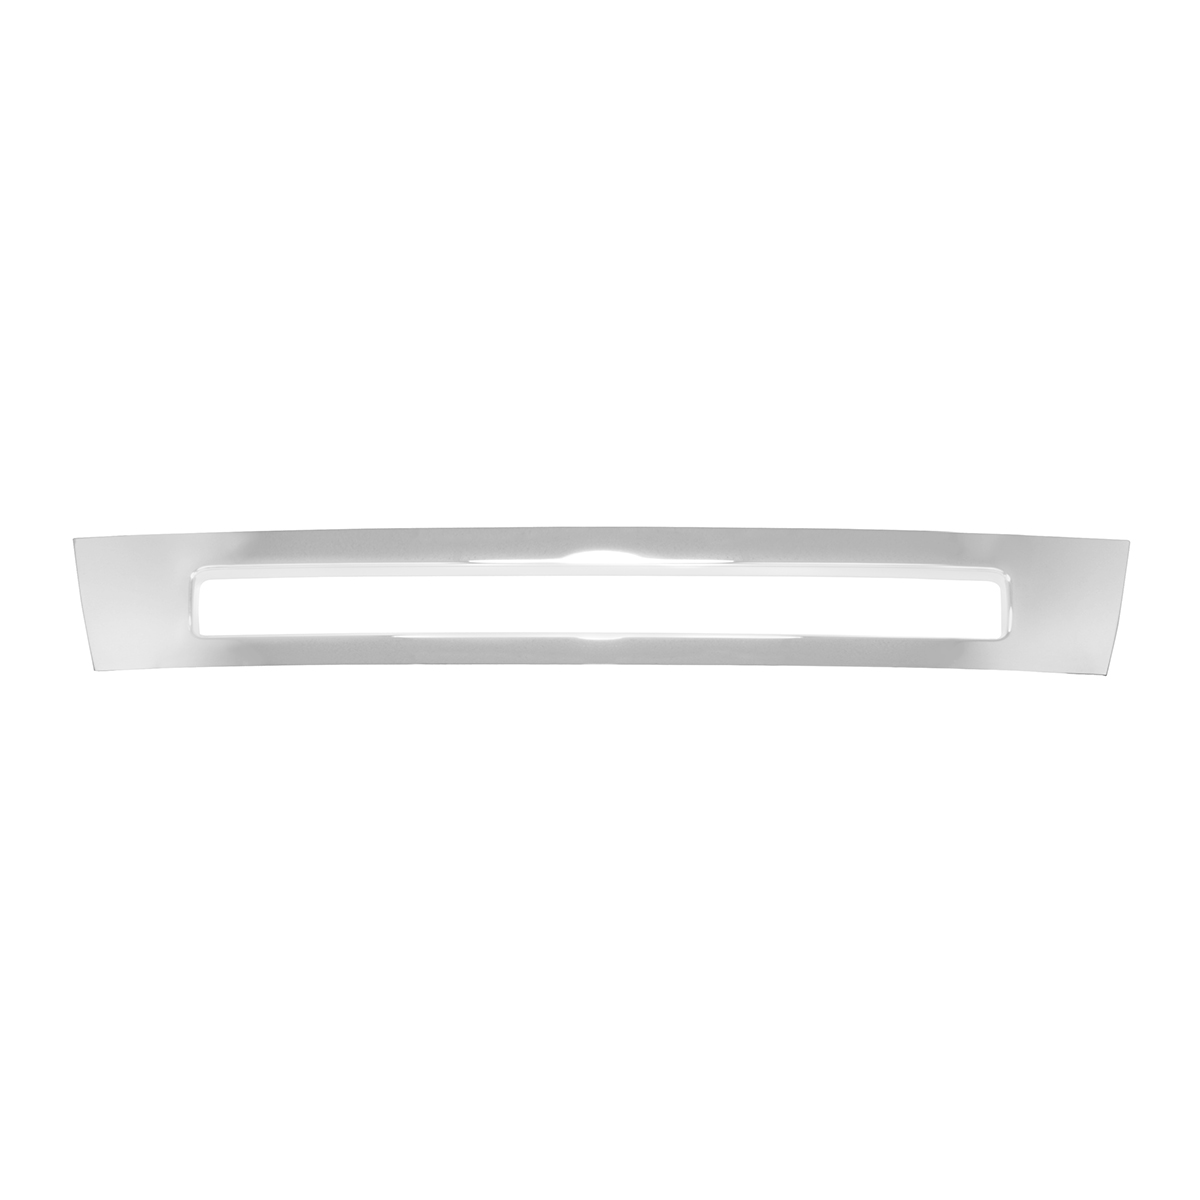 89323 Chrome Plastic Front Bumper Cover (Center) for Volvo VNL